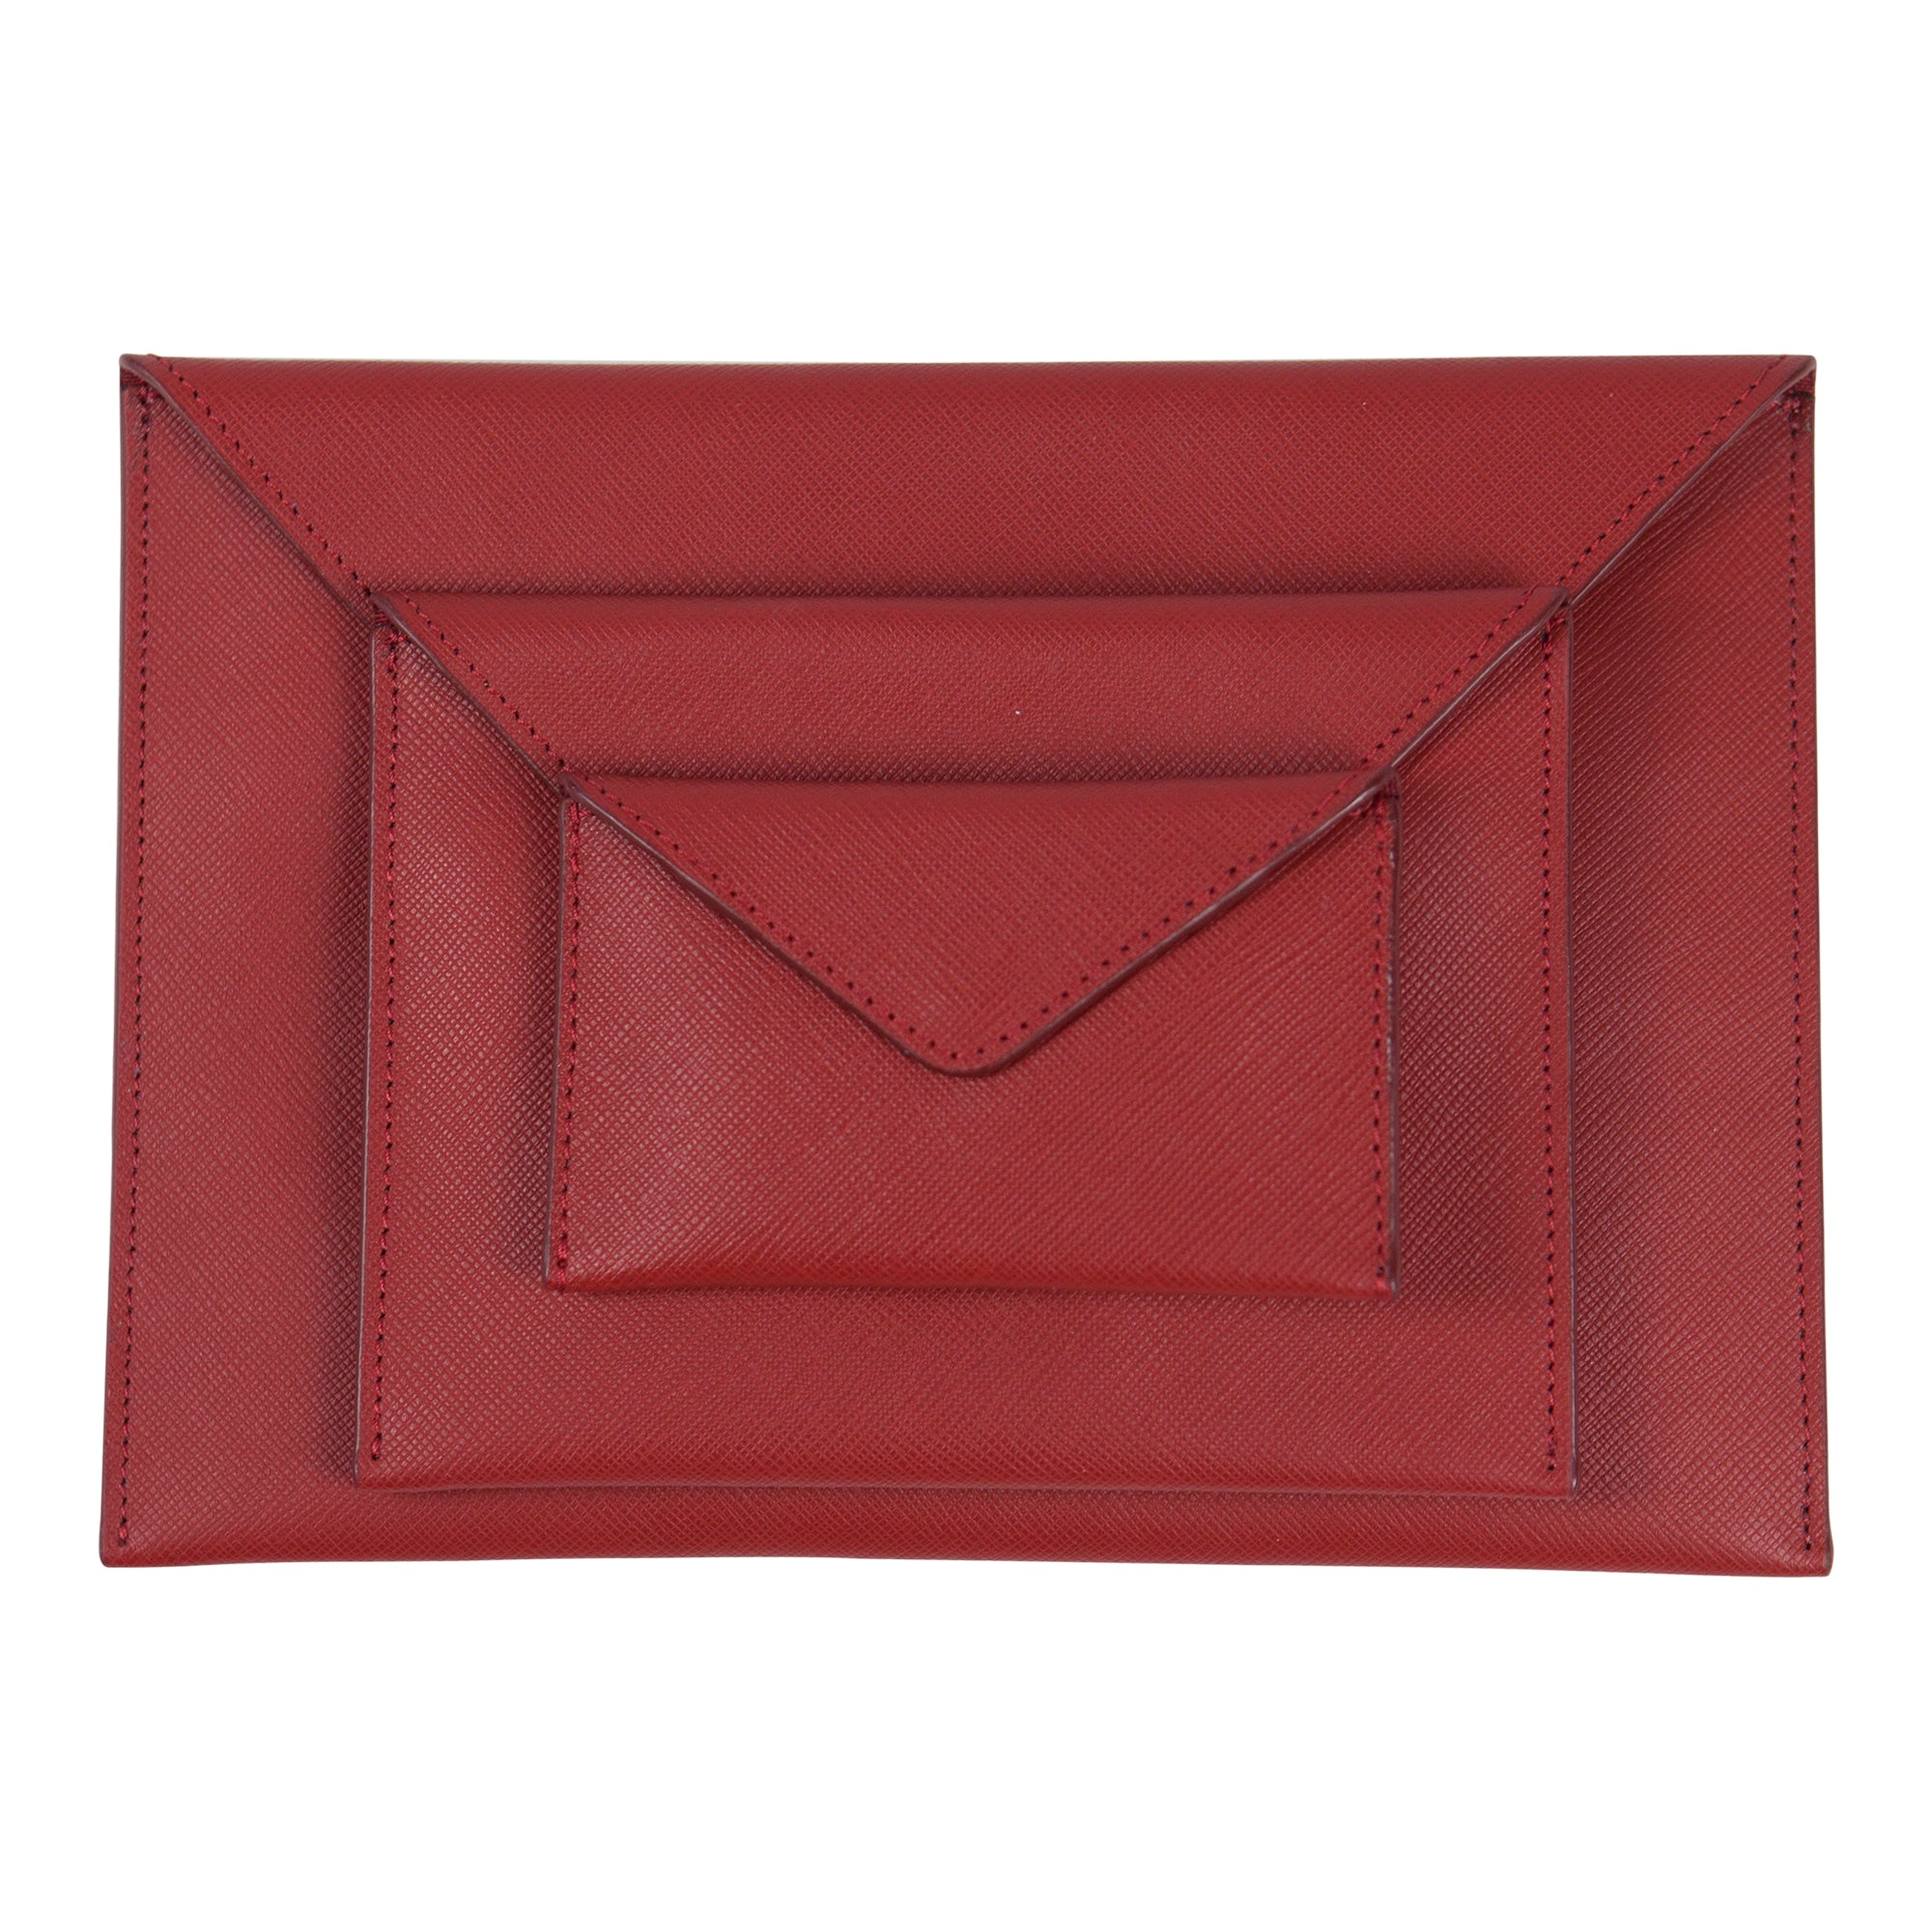 Canyon Ranch Red Leather Envelope Set